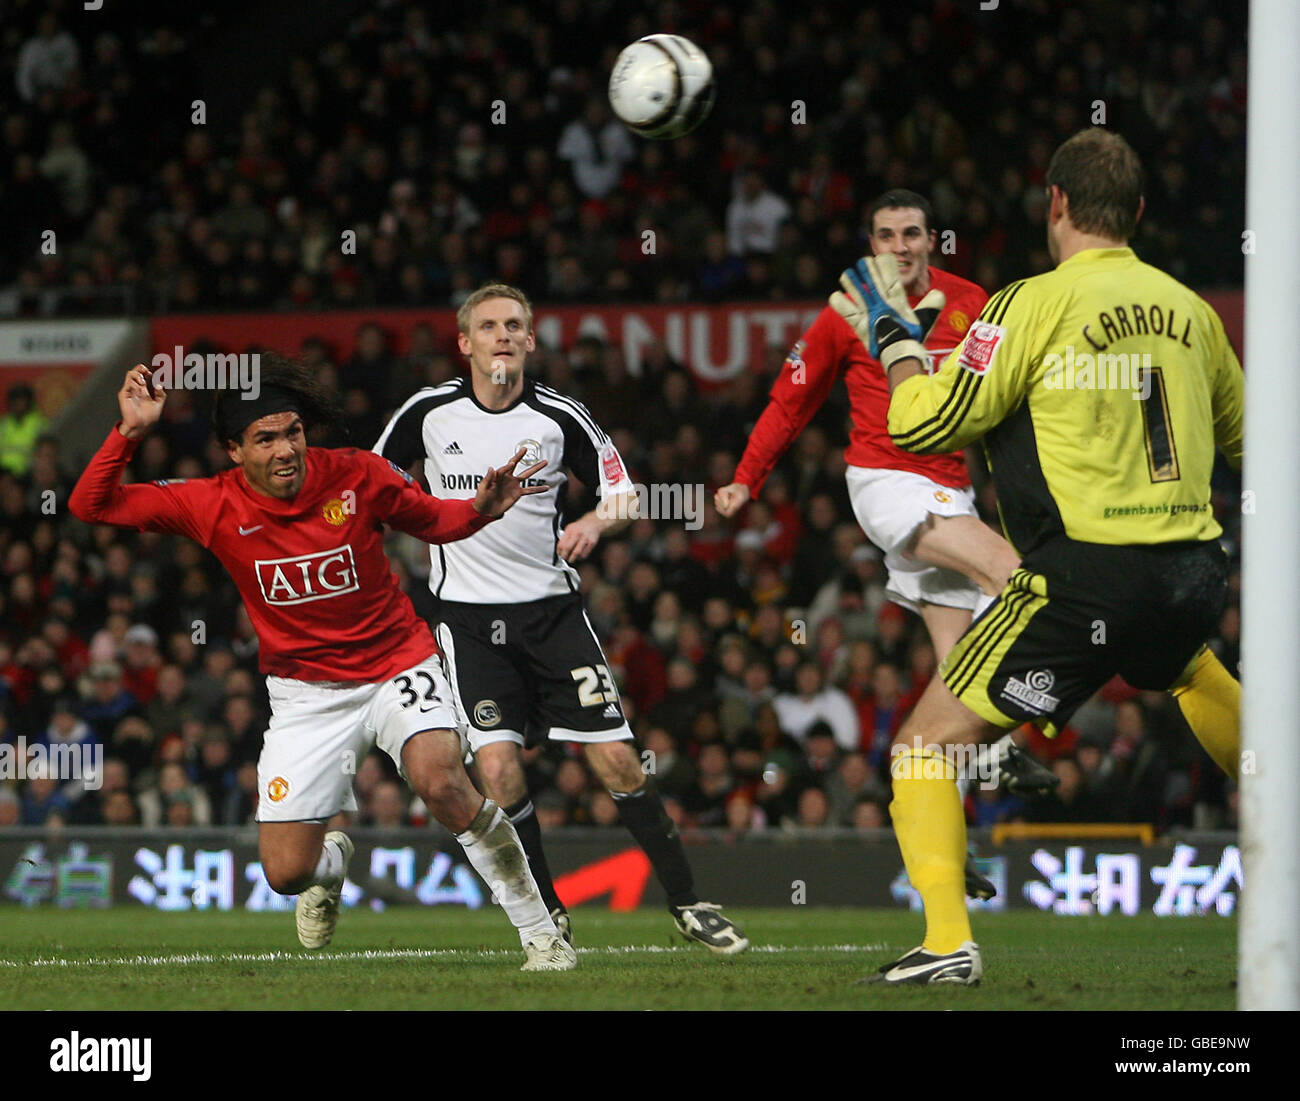 Soccer - Carling Cup - Semi Final - Second Leg - Manchester United v Derby County - Old Trafford - Stock Image